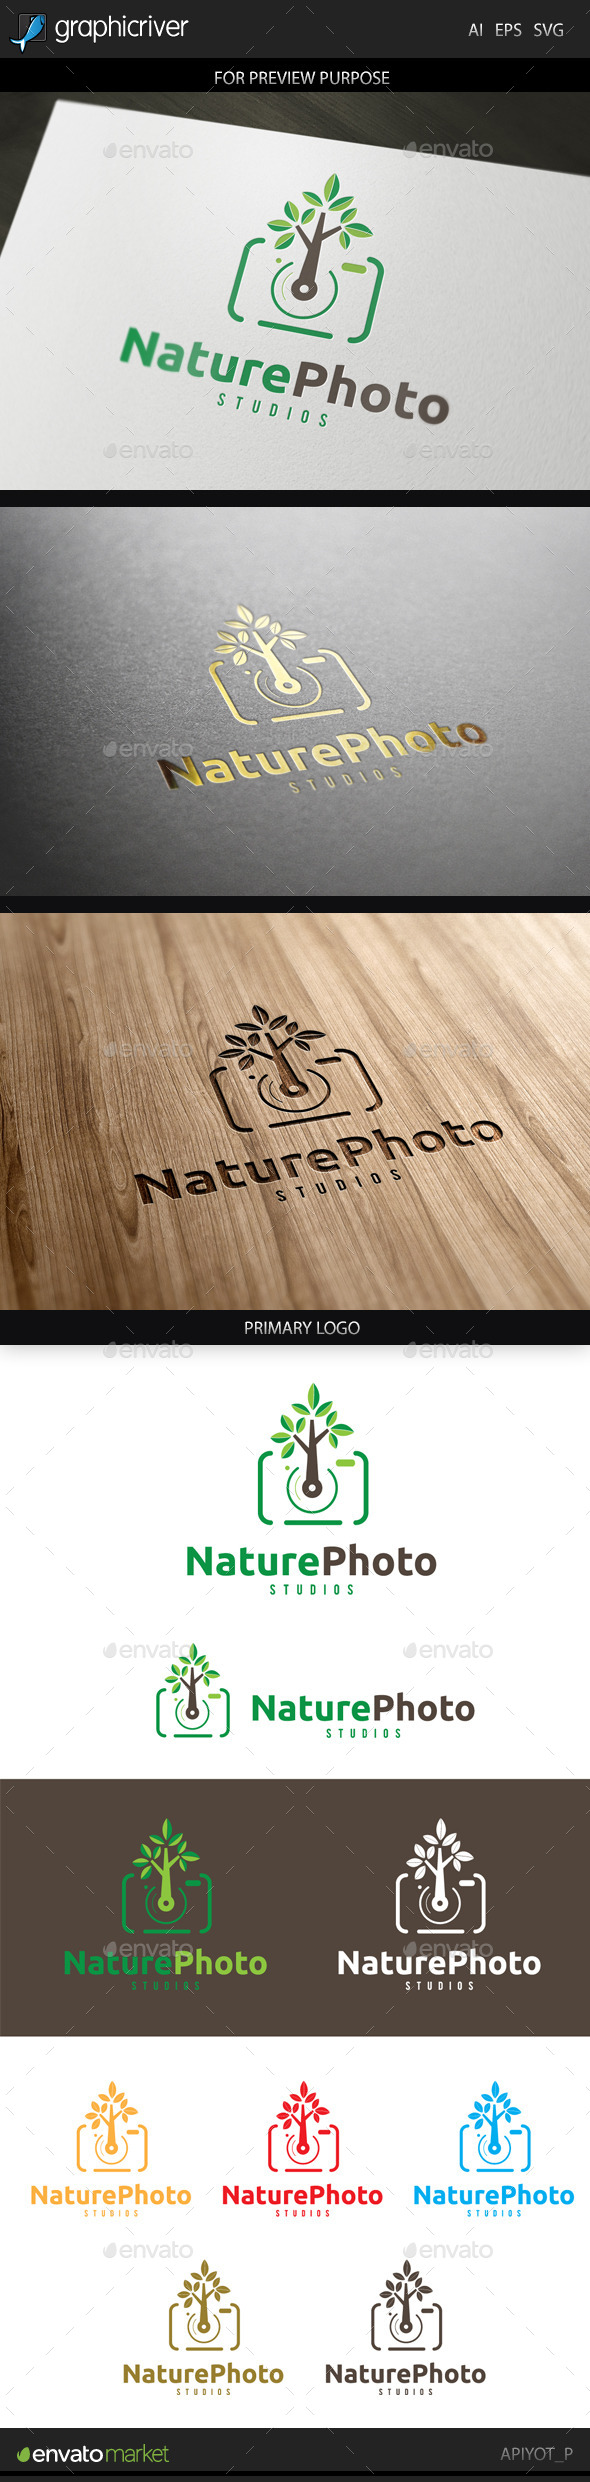 GraphicRiver Nature Photo Logo 9226491